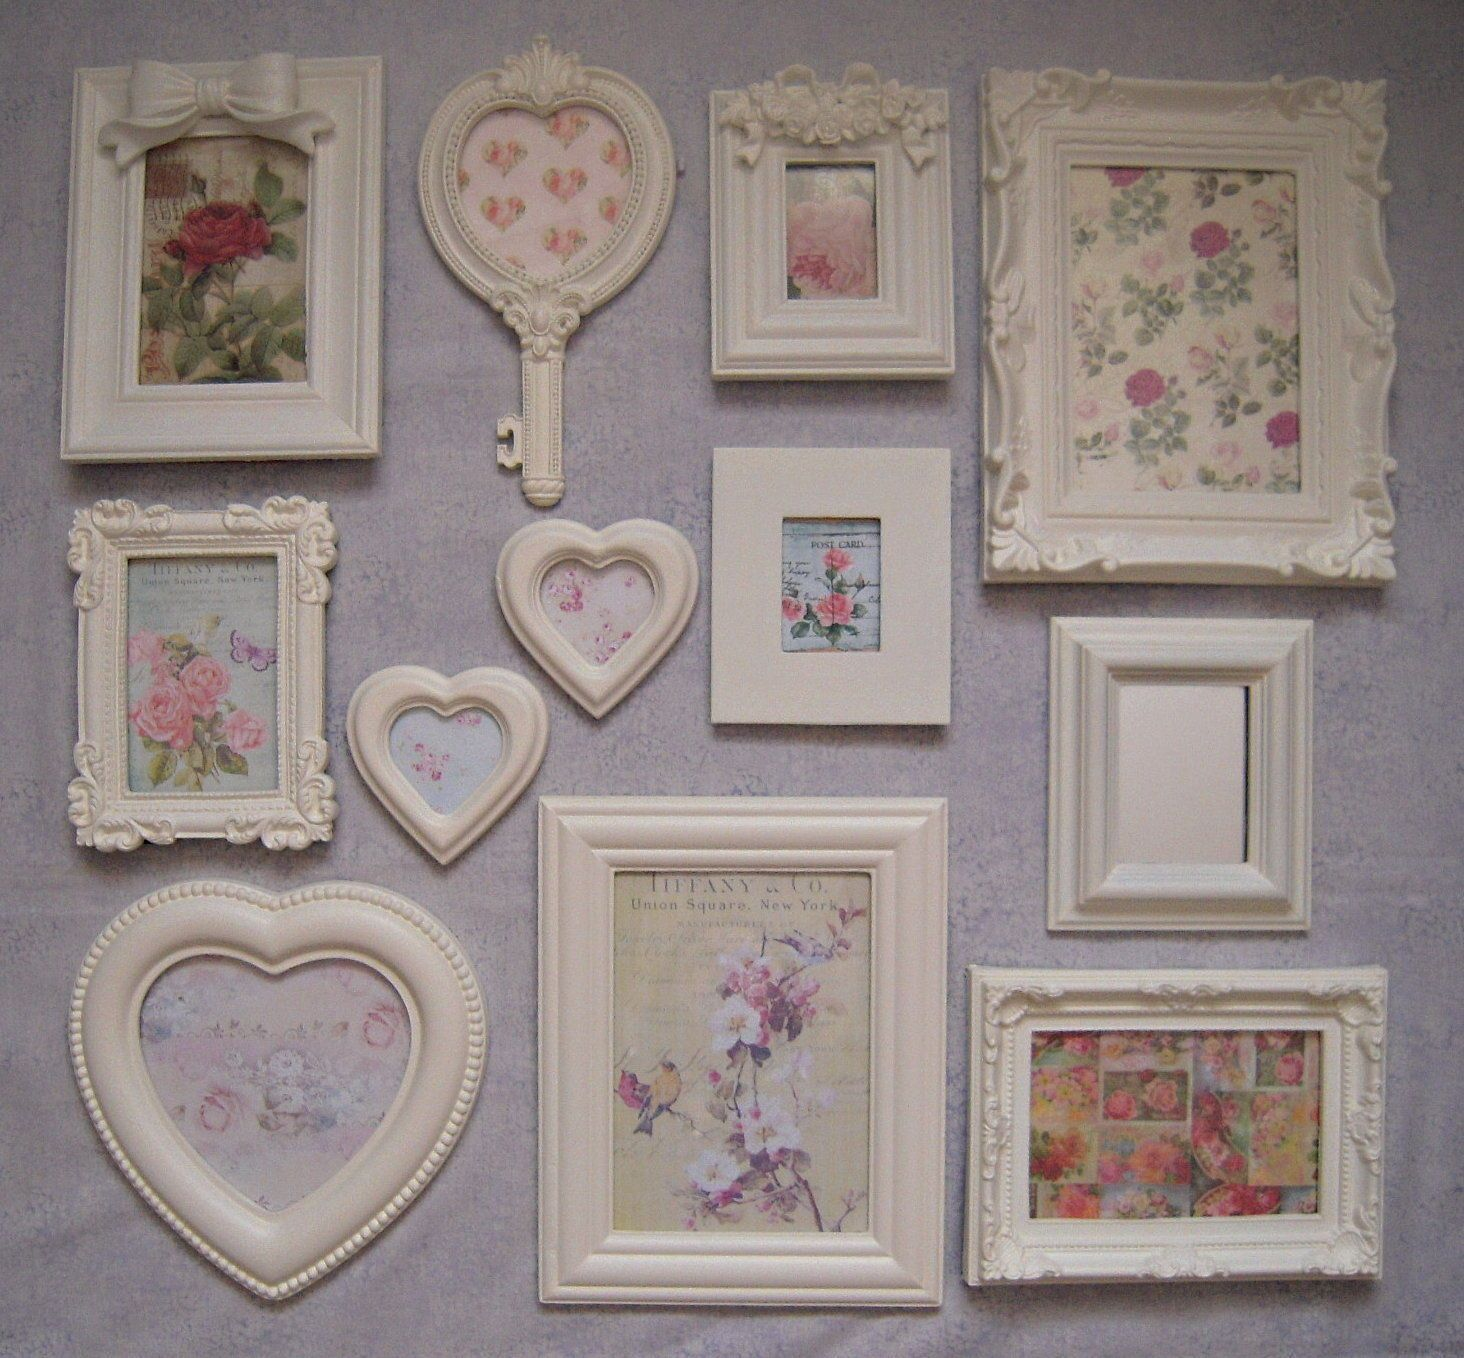 Shabby chic photo frames laura ashley country white paint vintage shabby chic photo frames laura ashley country white paint vintage roses pictures ebay jeuxipadfo Gallery